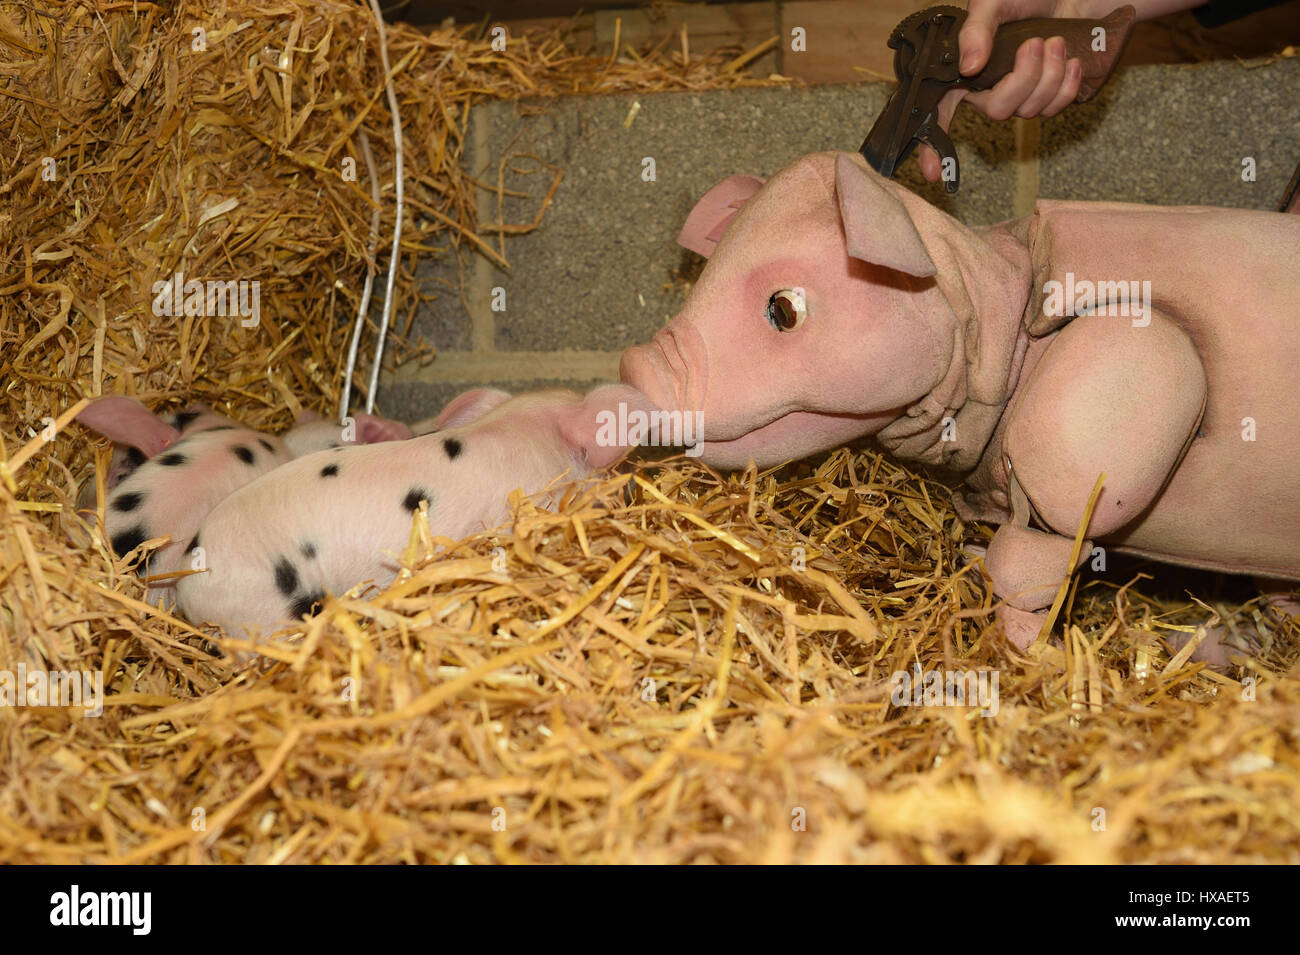 Babe the sheep pig puppet meets real live lambs and piglets down on the farm, press shoot for Wyvern Theatre where Stock Photo